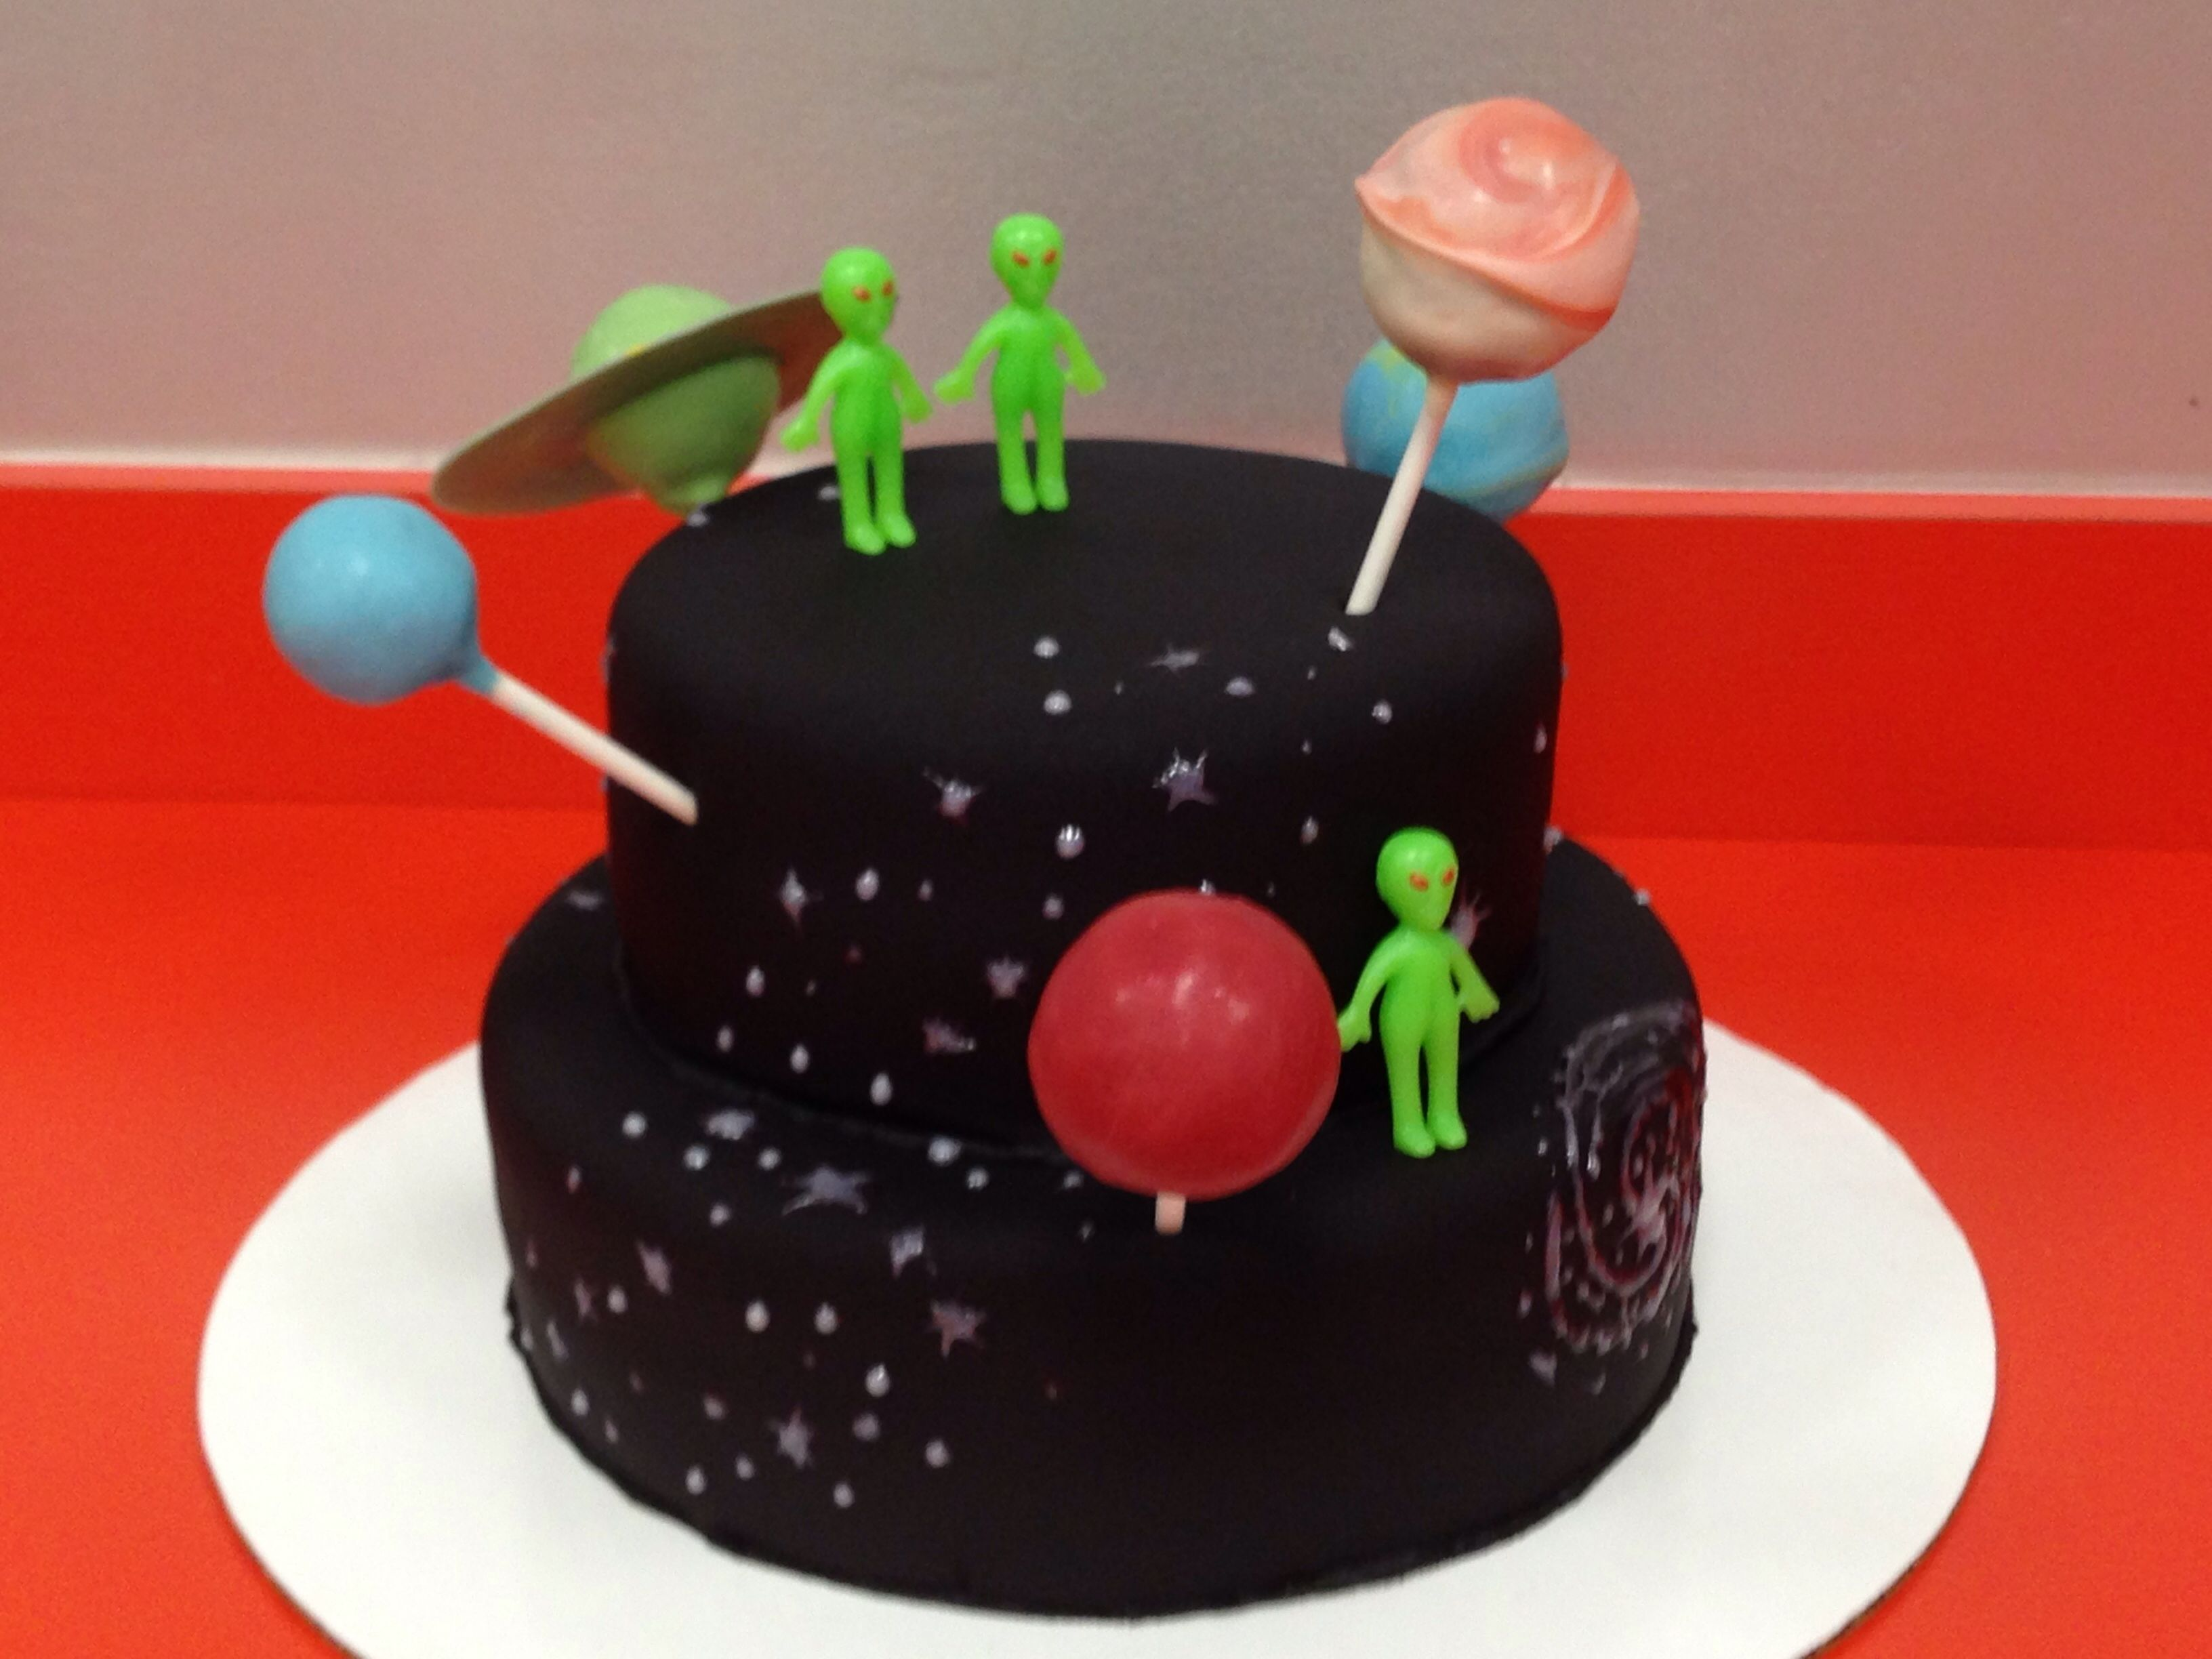 Outer Space Cake With Planet Cake Pops